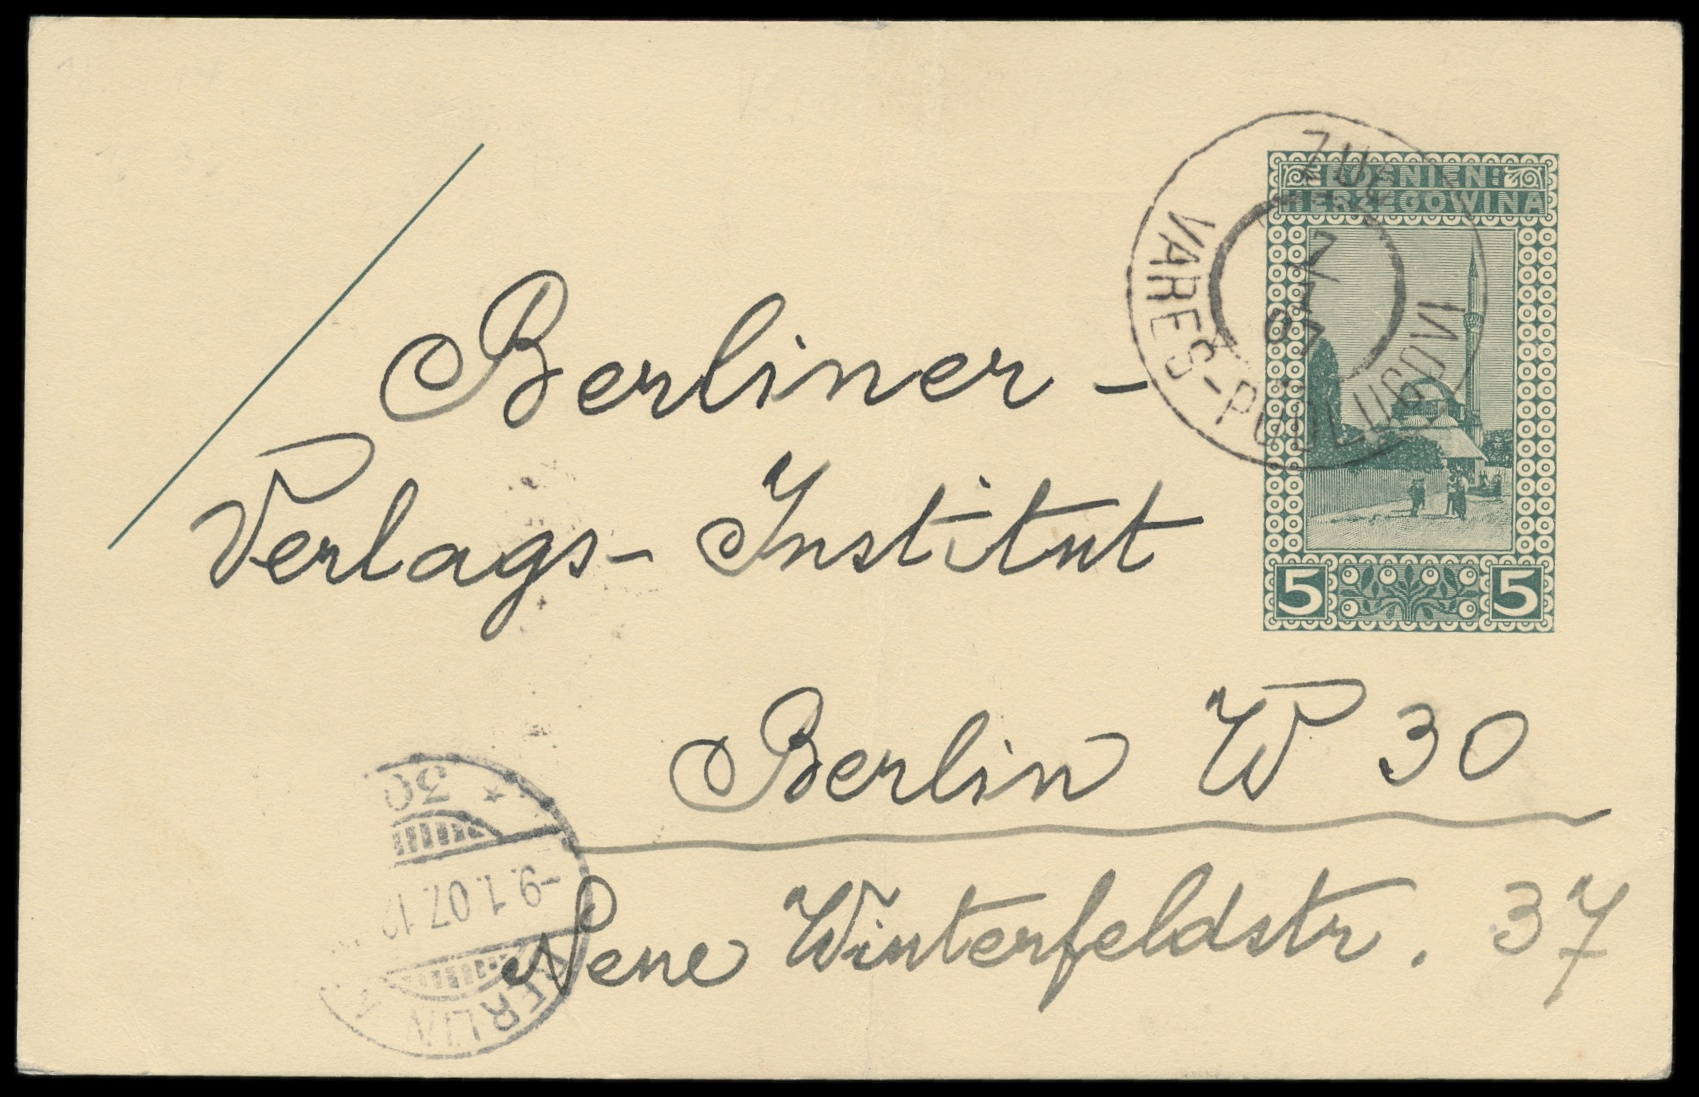 Lot 13 - europa bosnien-herzegowina -  Peter Harlos Auctions 42. Harlos Auktion